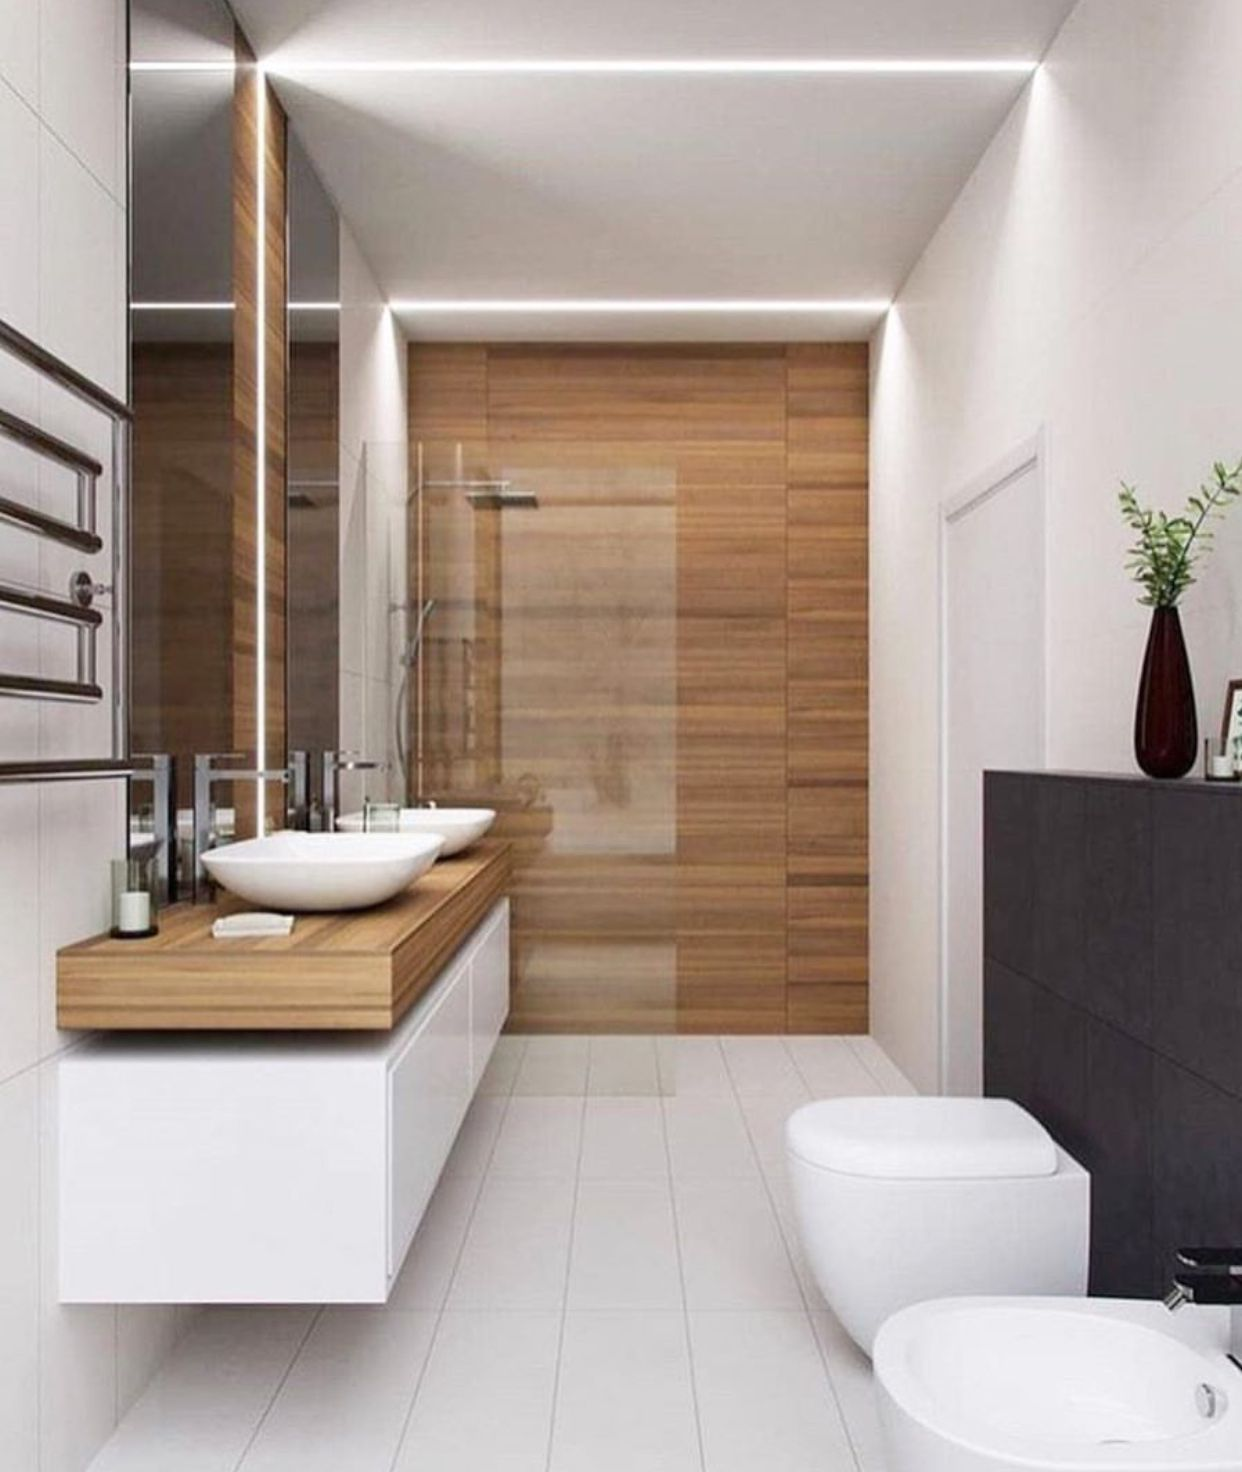 10 Small Bathroom Ideas for Minimalist Houses | Modern ...